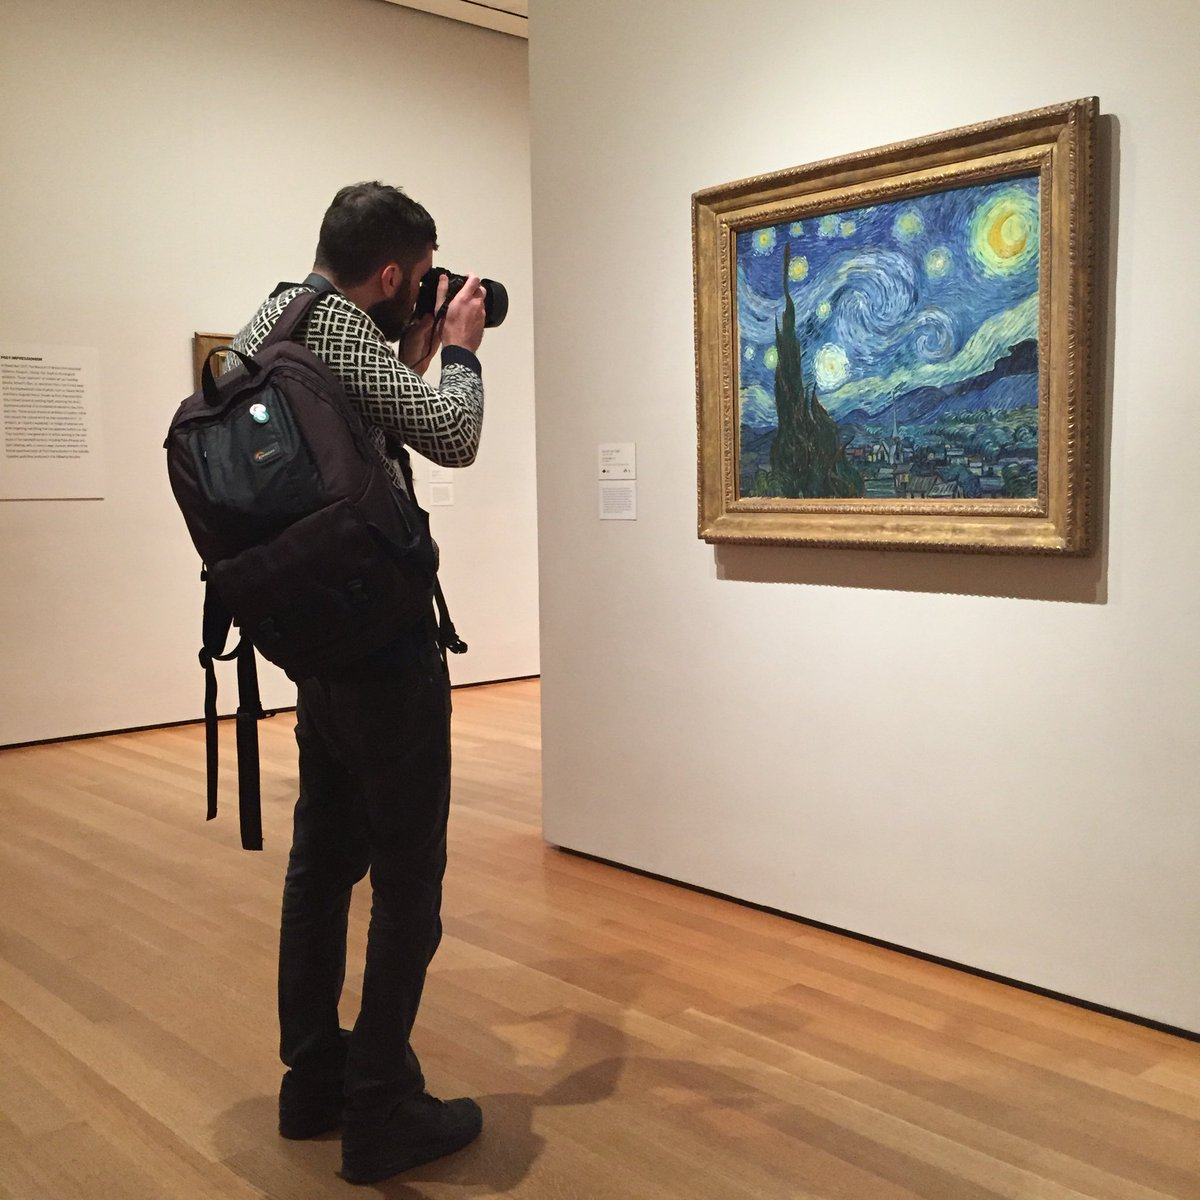 @dave_krugman capturing The Starry Night @MuseumModernArt. NYSCulture EmptyMuseum